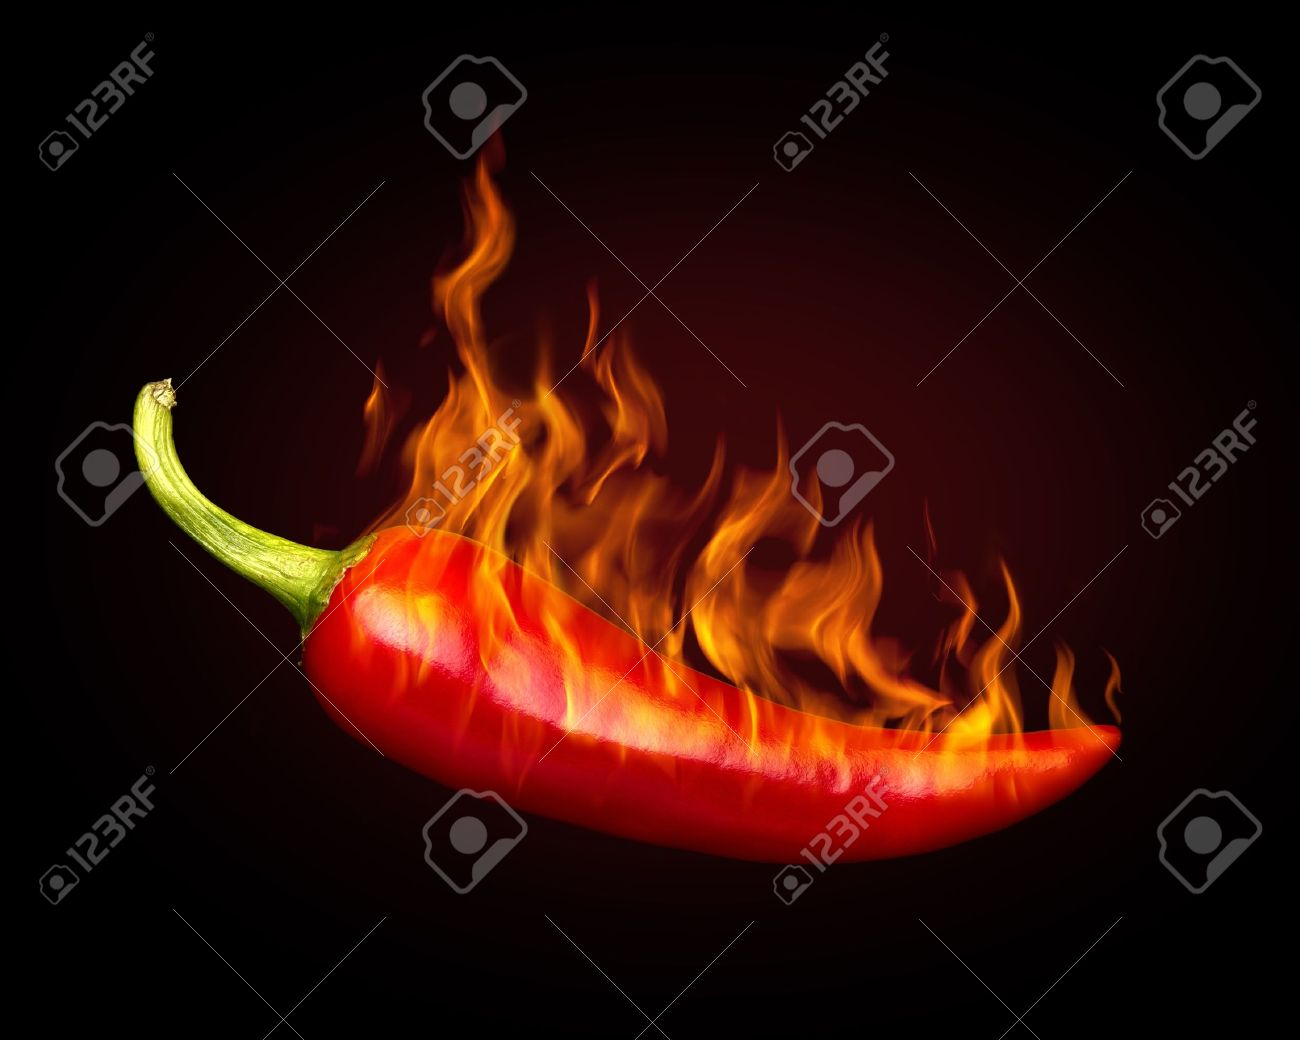 Red hot chili pepper on black background with flame Stock Photo - 10867090